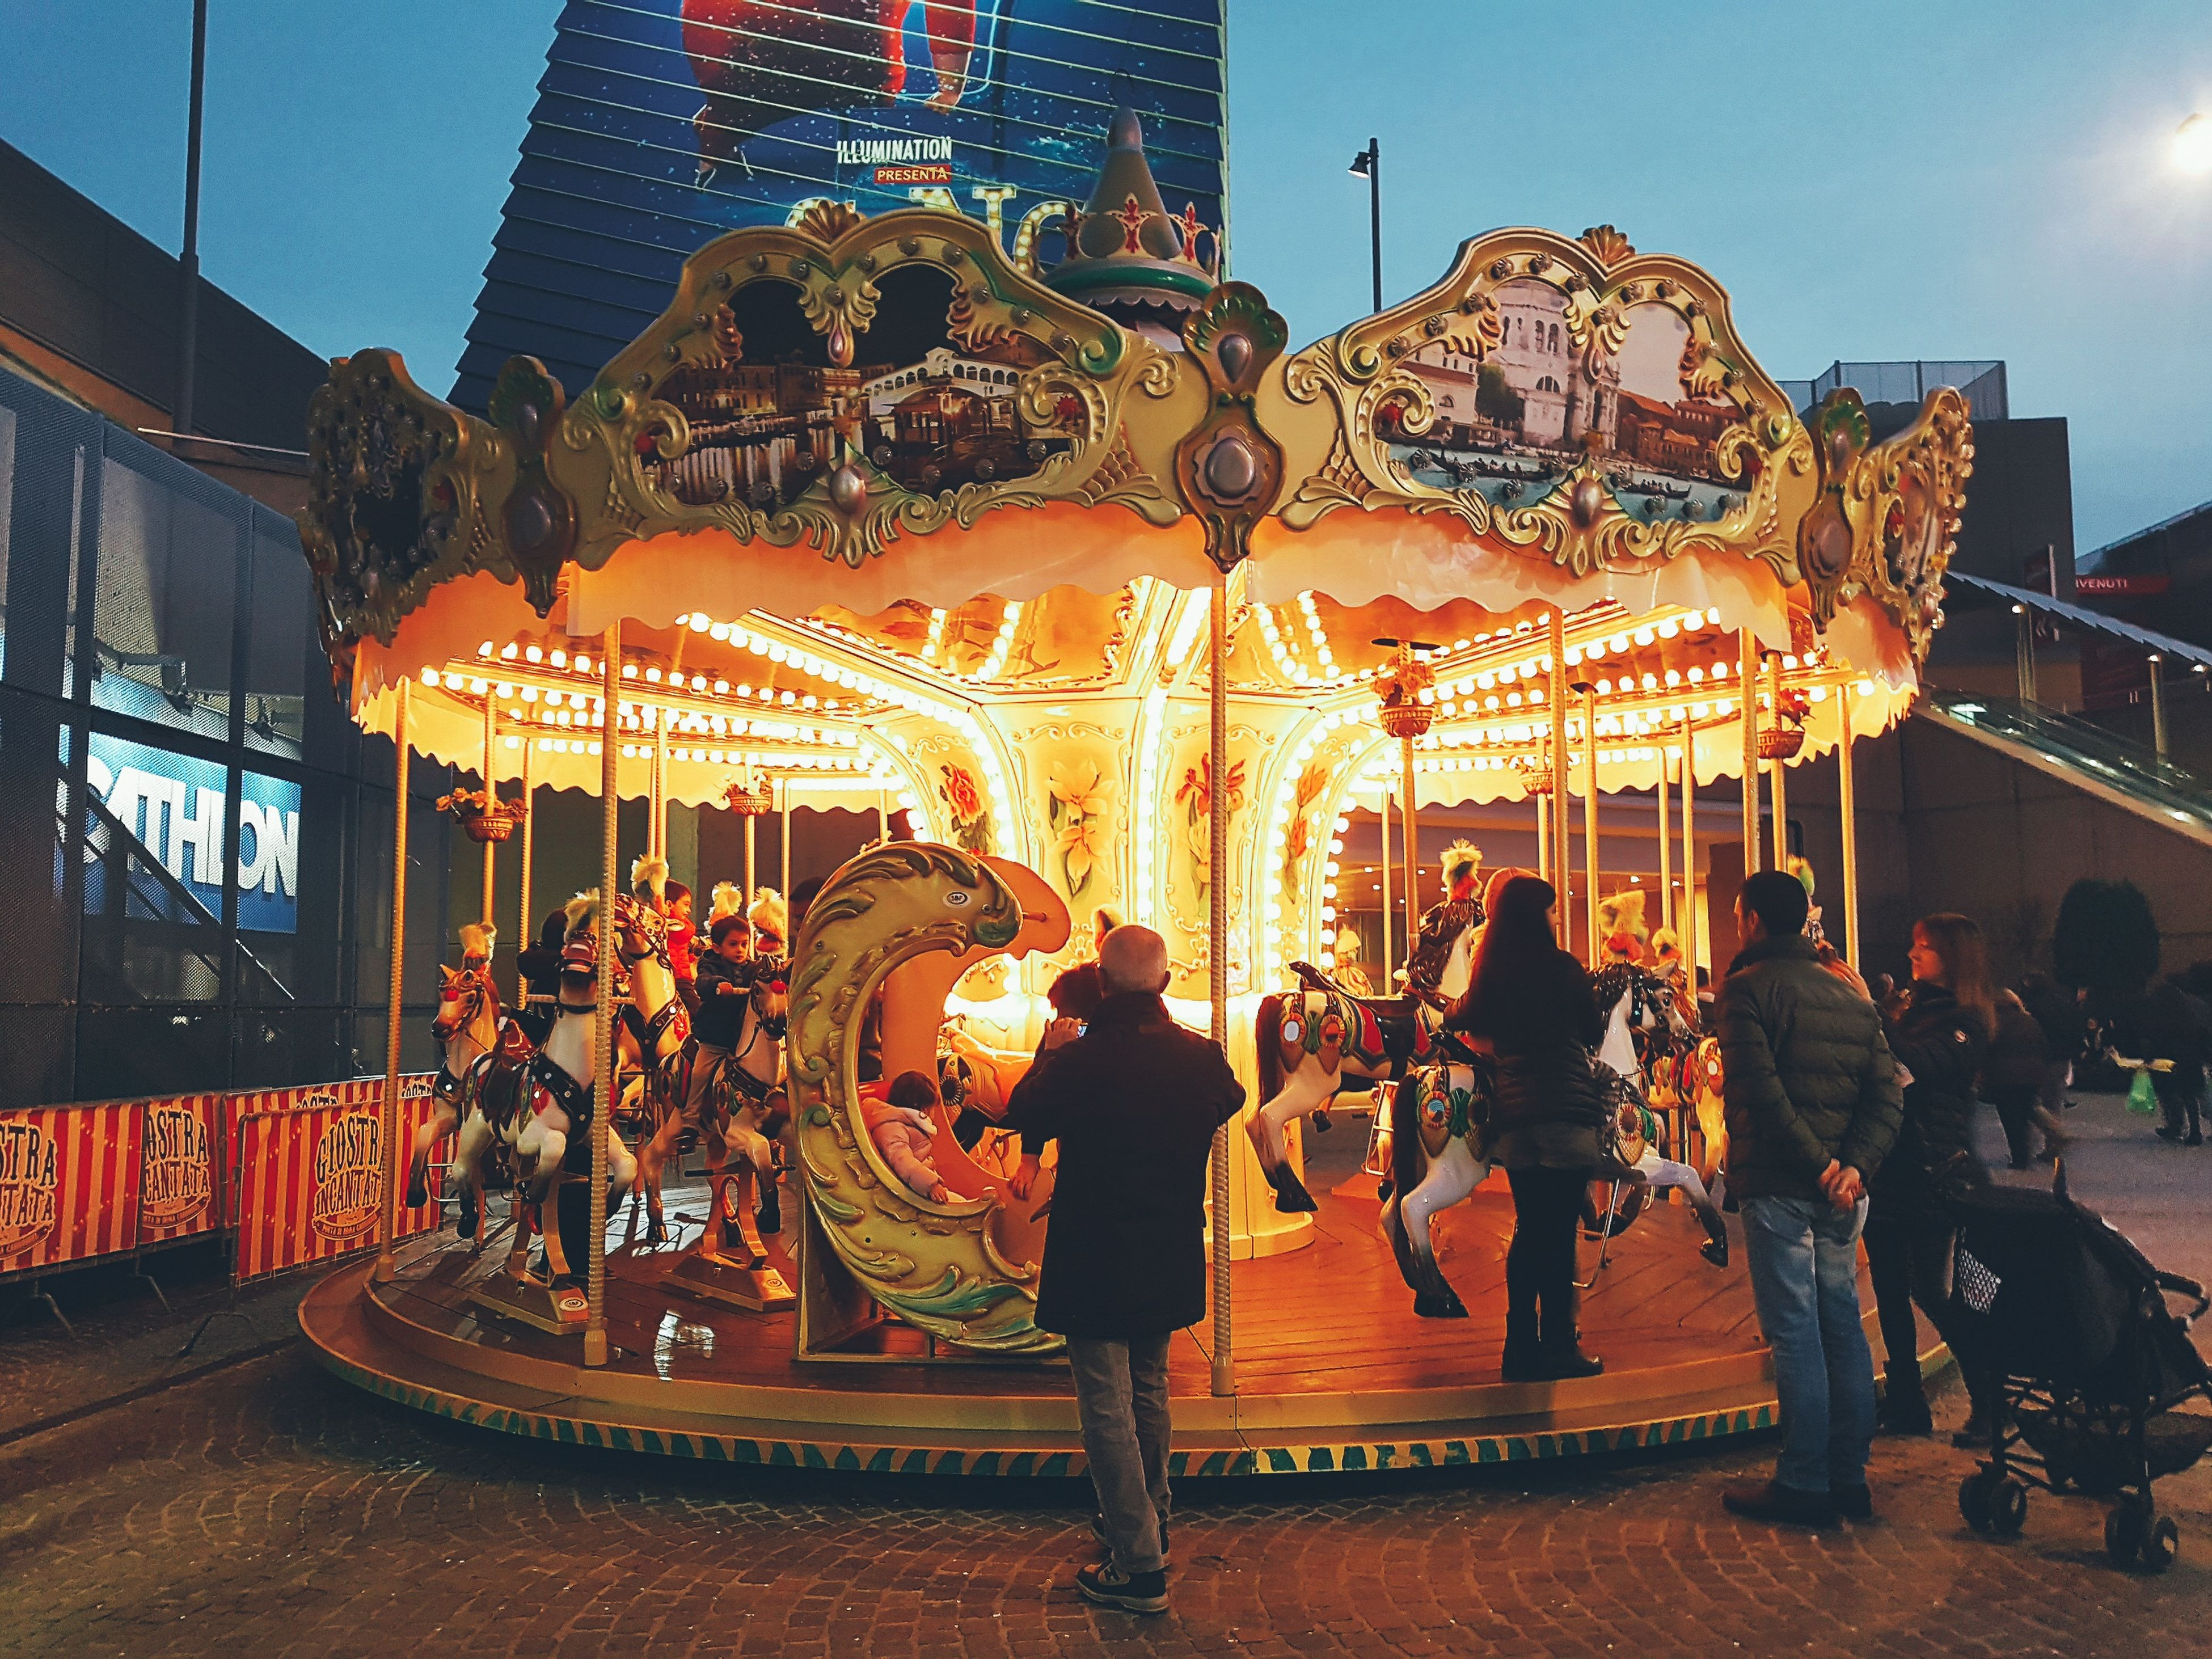 illuminated, lighting equipment, amusement park, night, arts culture and entertainment, carousel, amusement park ride, sky, outdoors, people